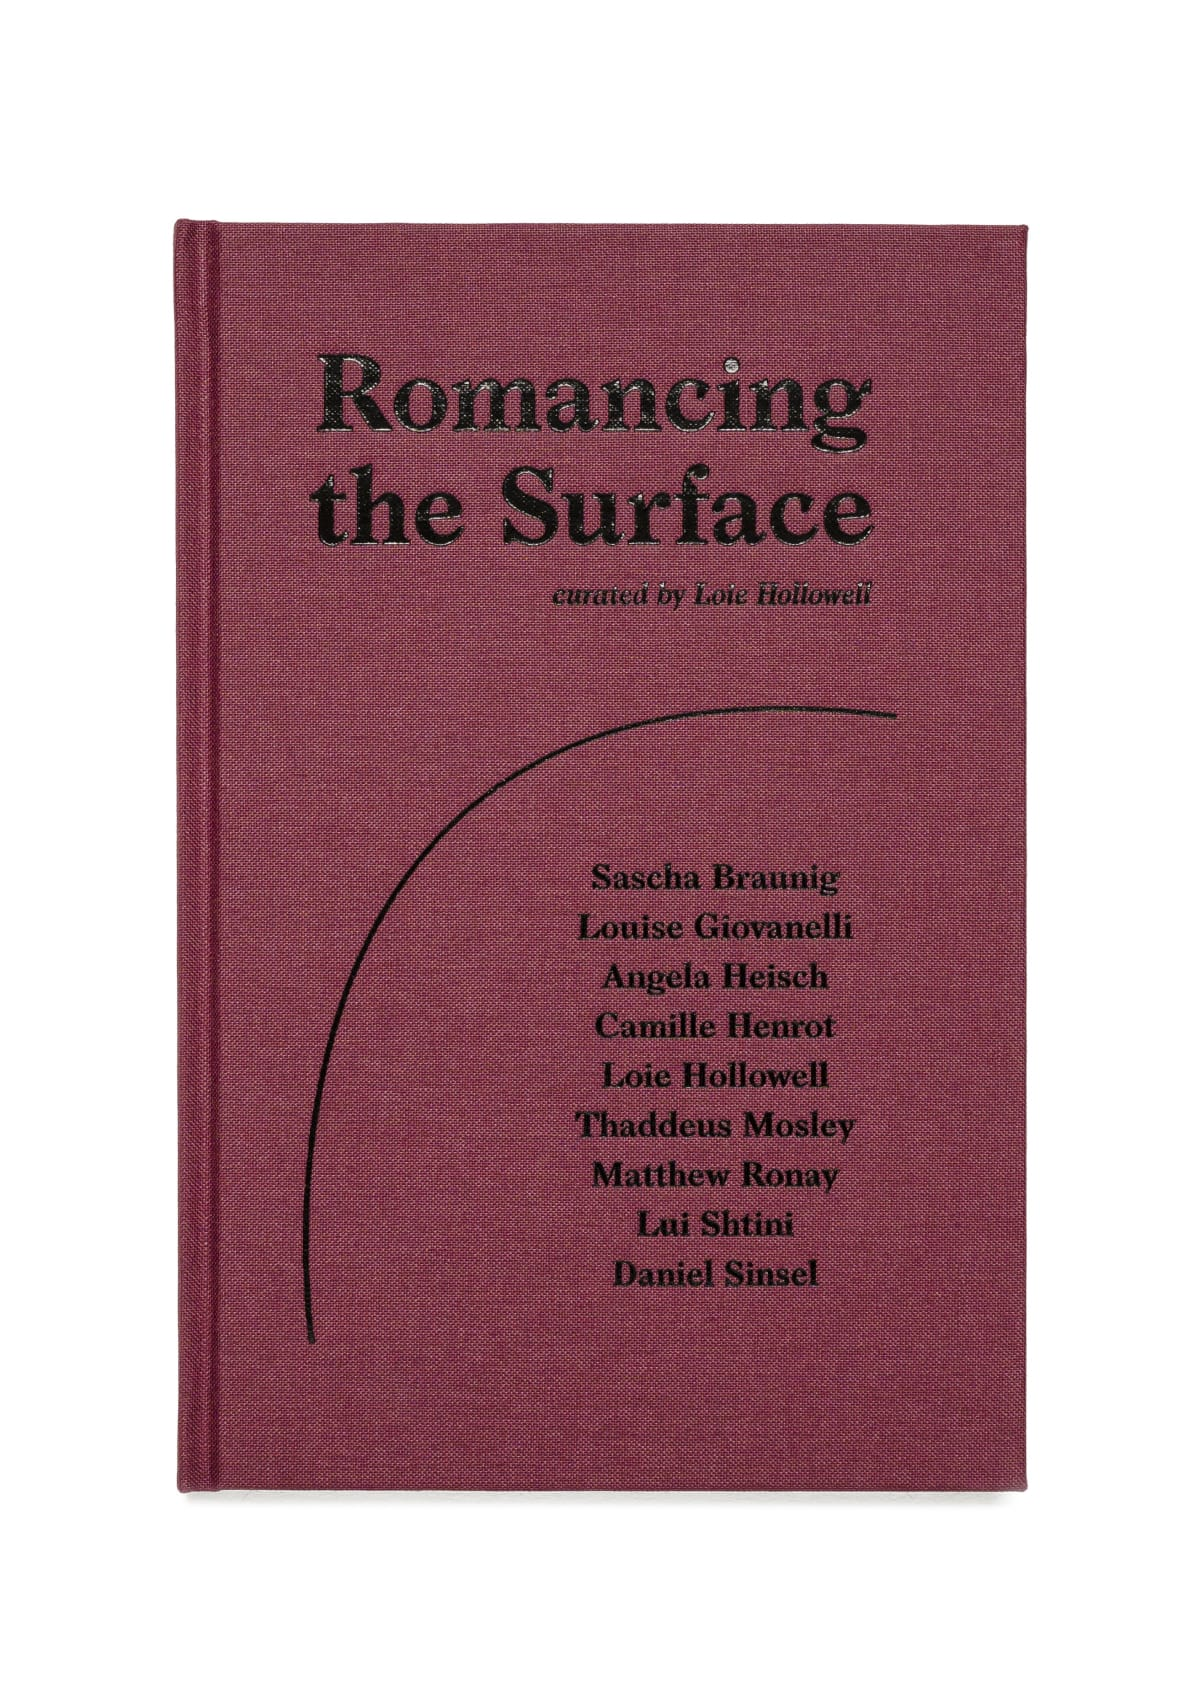 Romancing the Surface